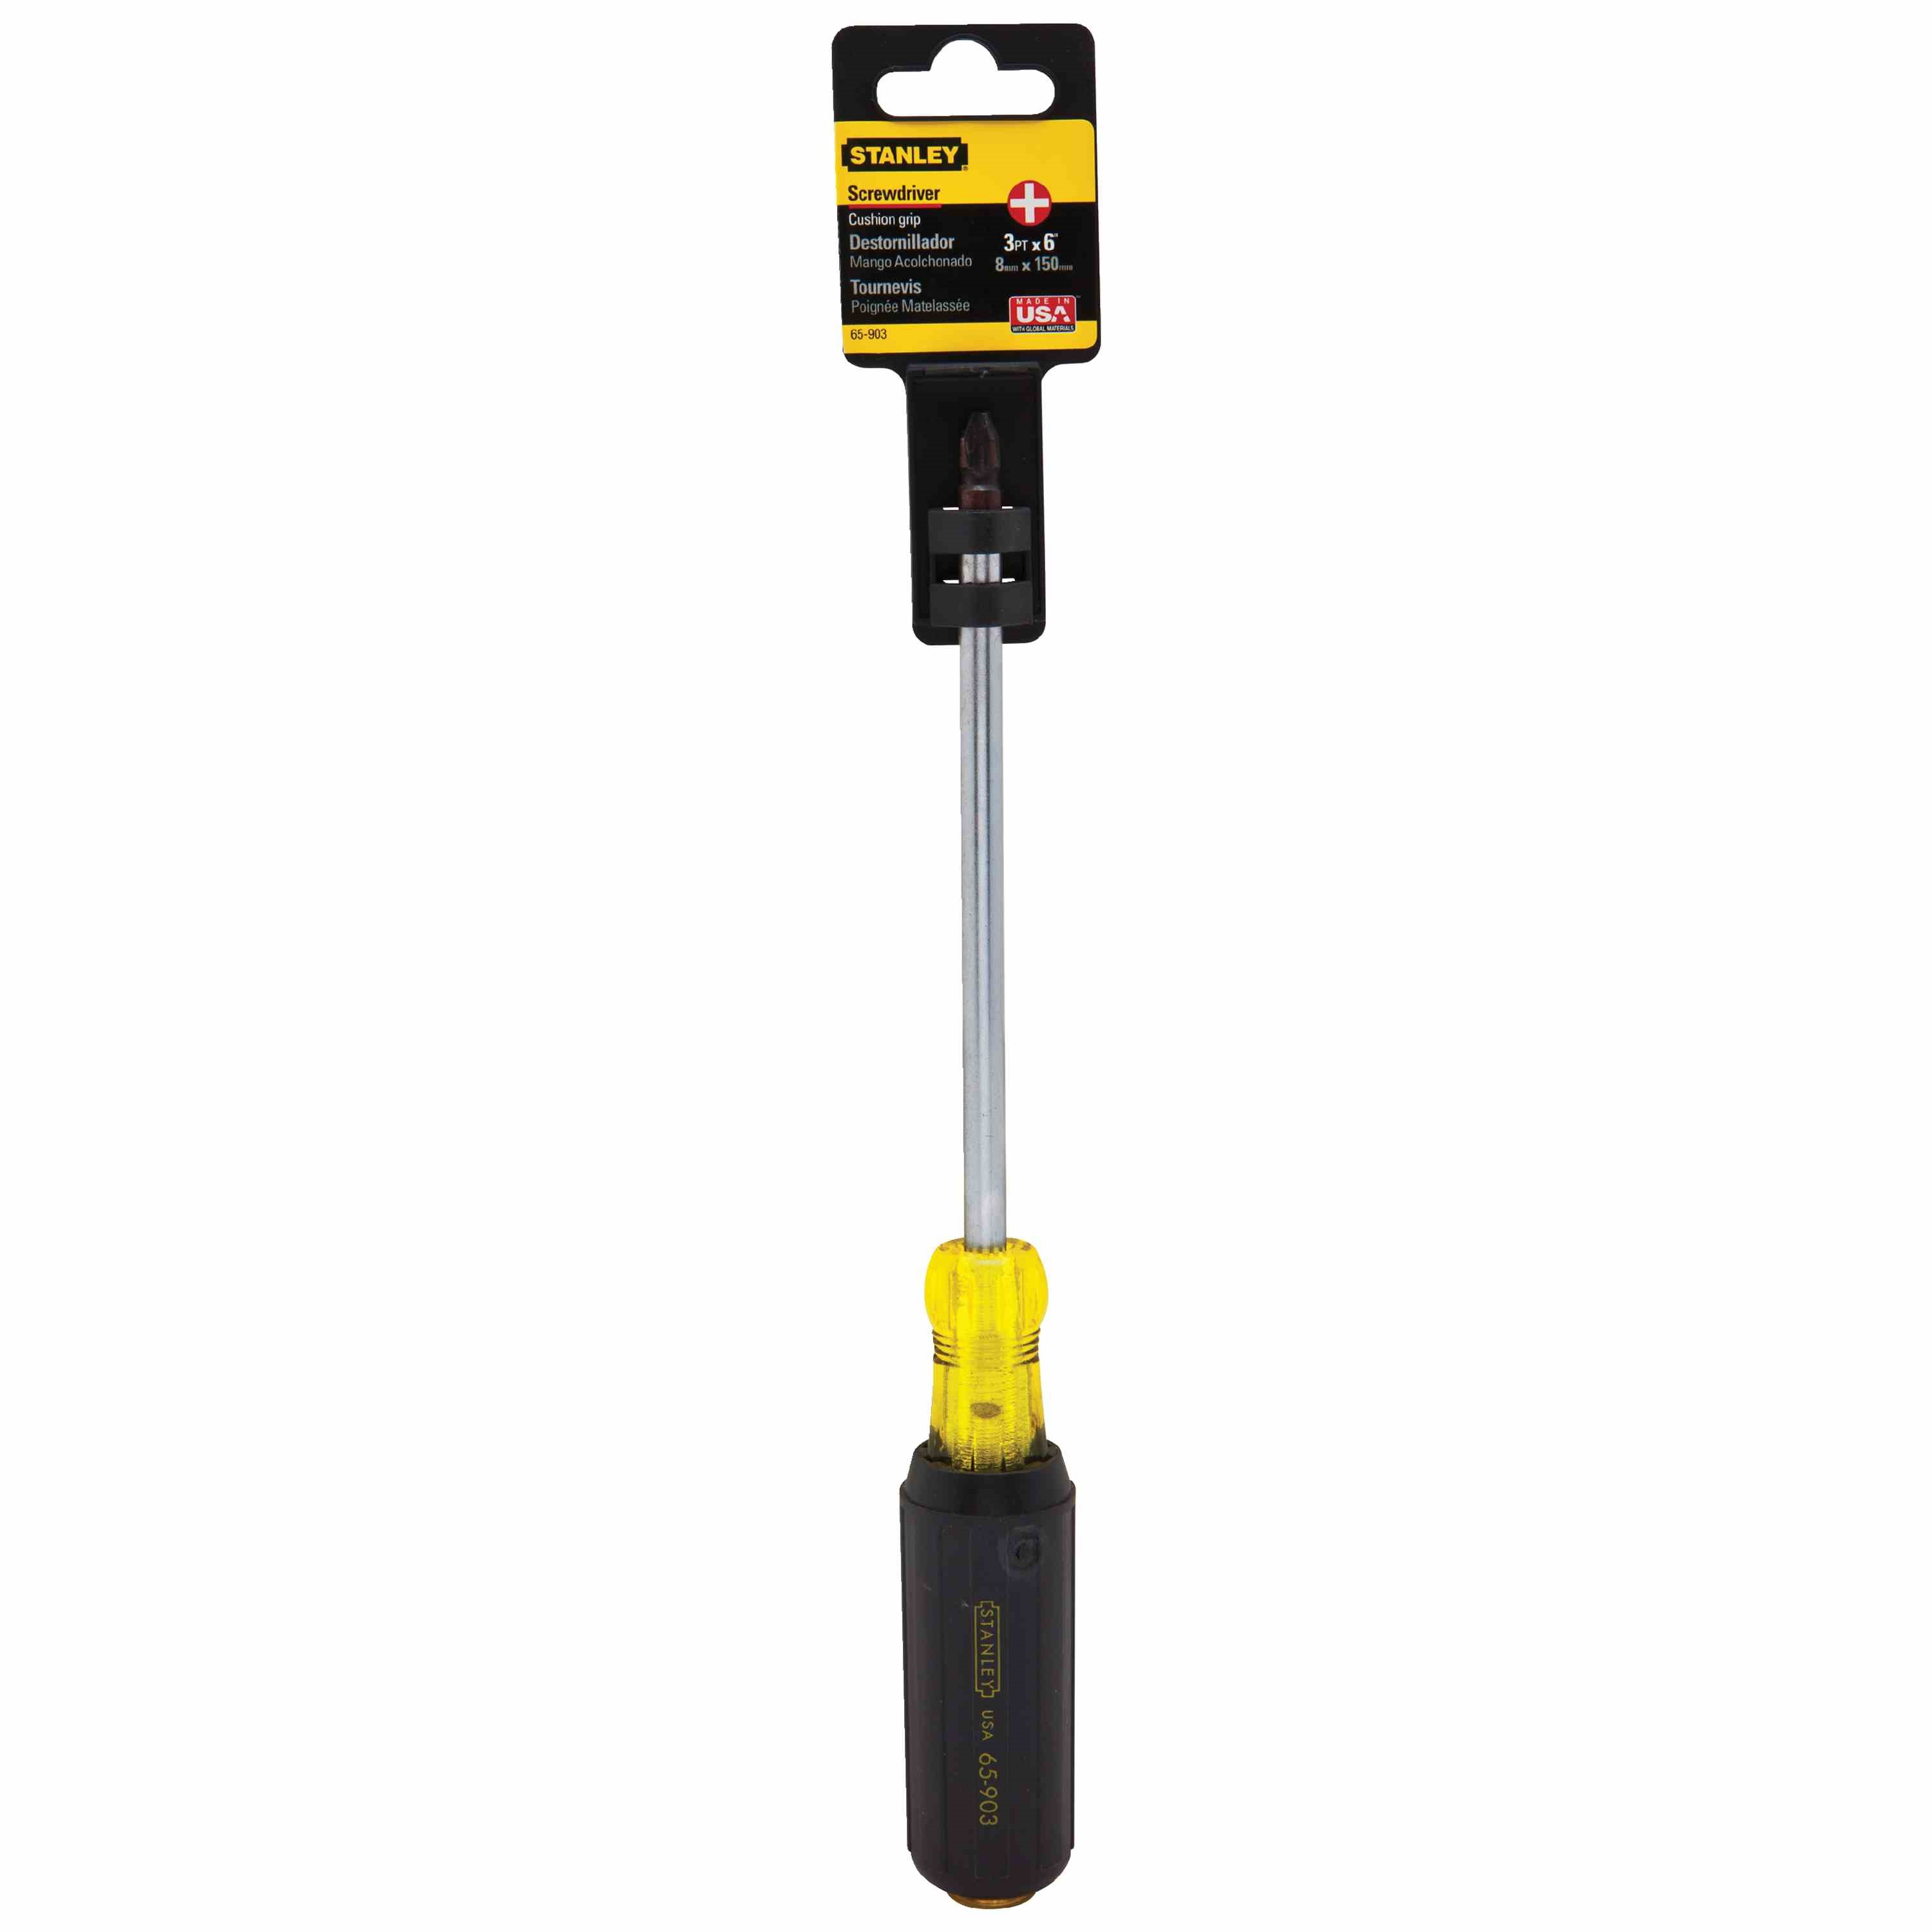 Stanley Tools - 3 pt x 6 in Vinyl Grip Phillips Screwdriver - 65-903